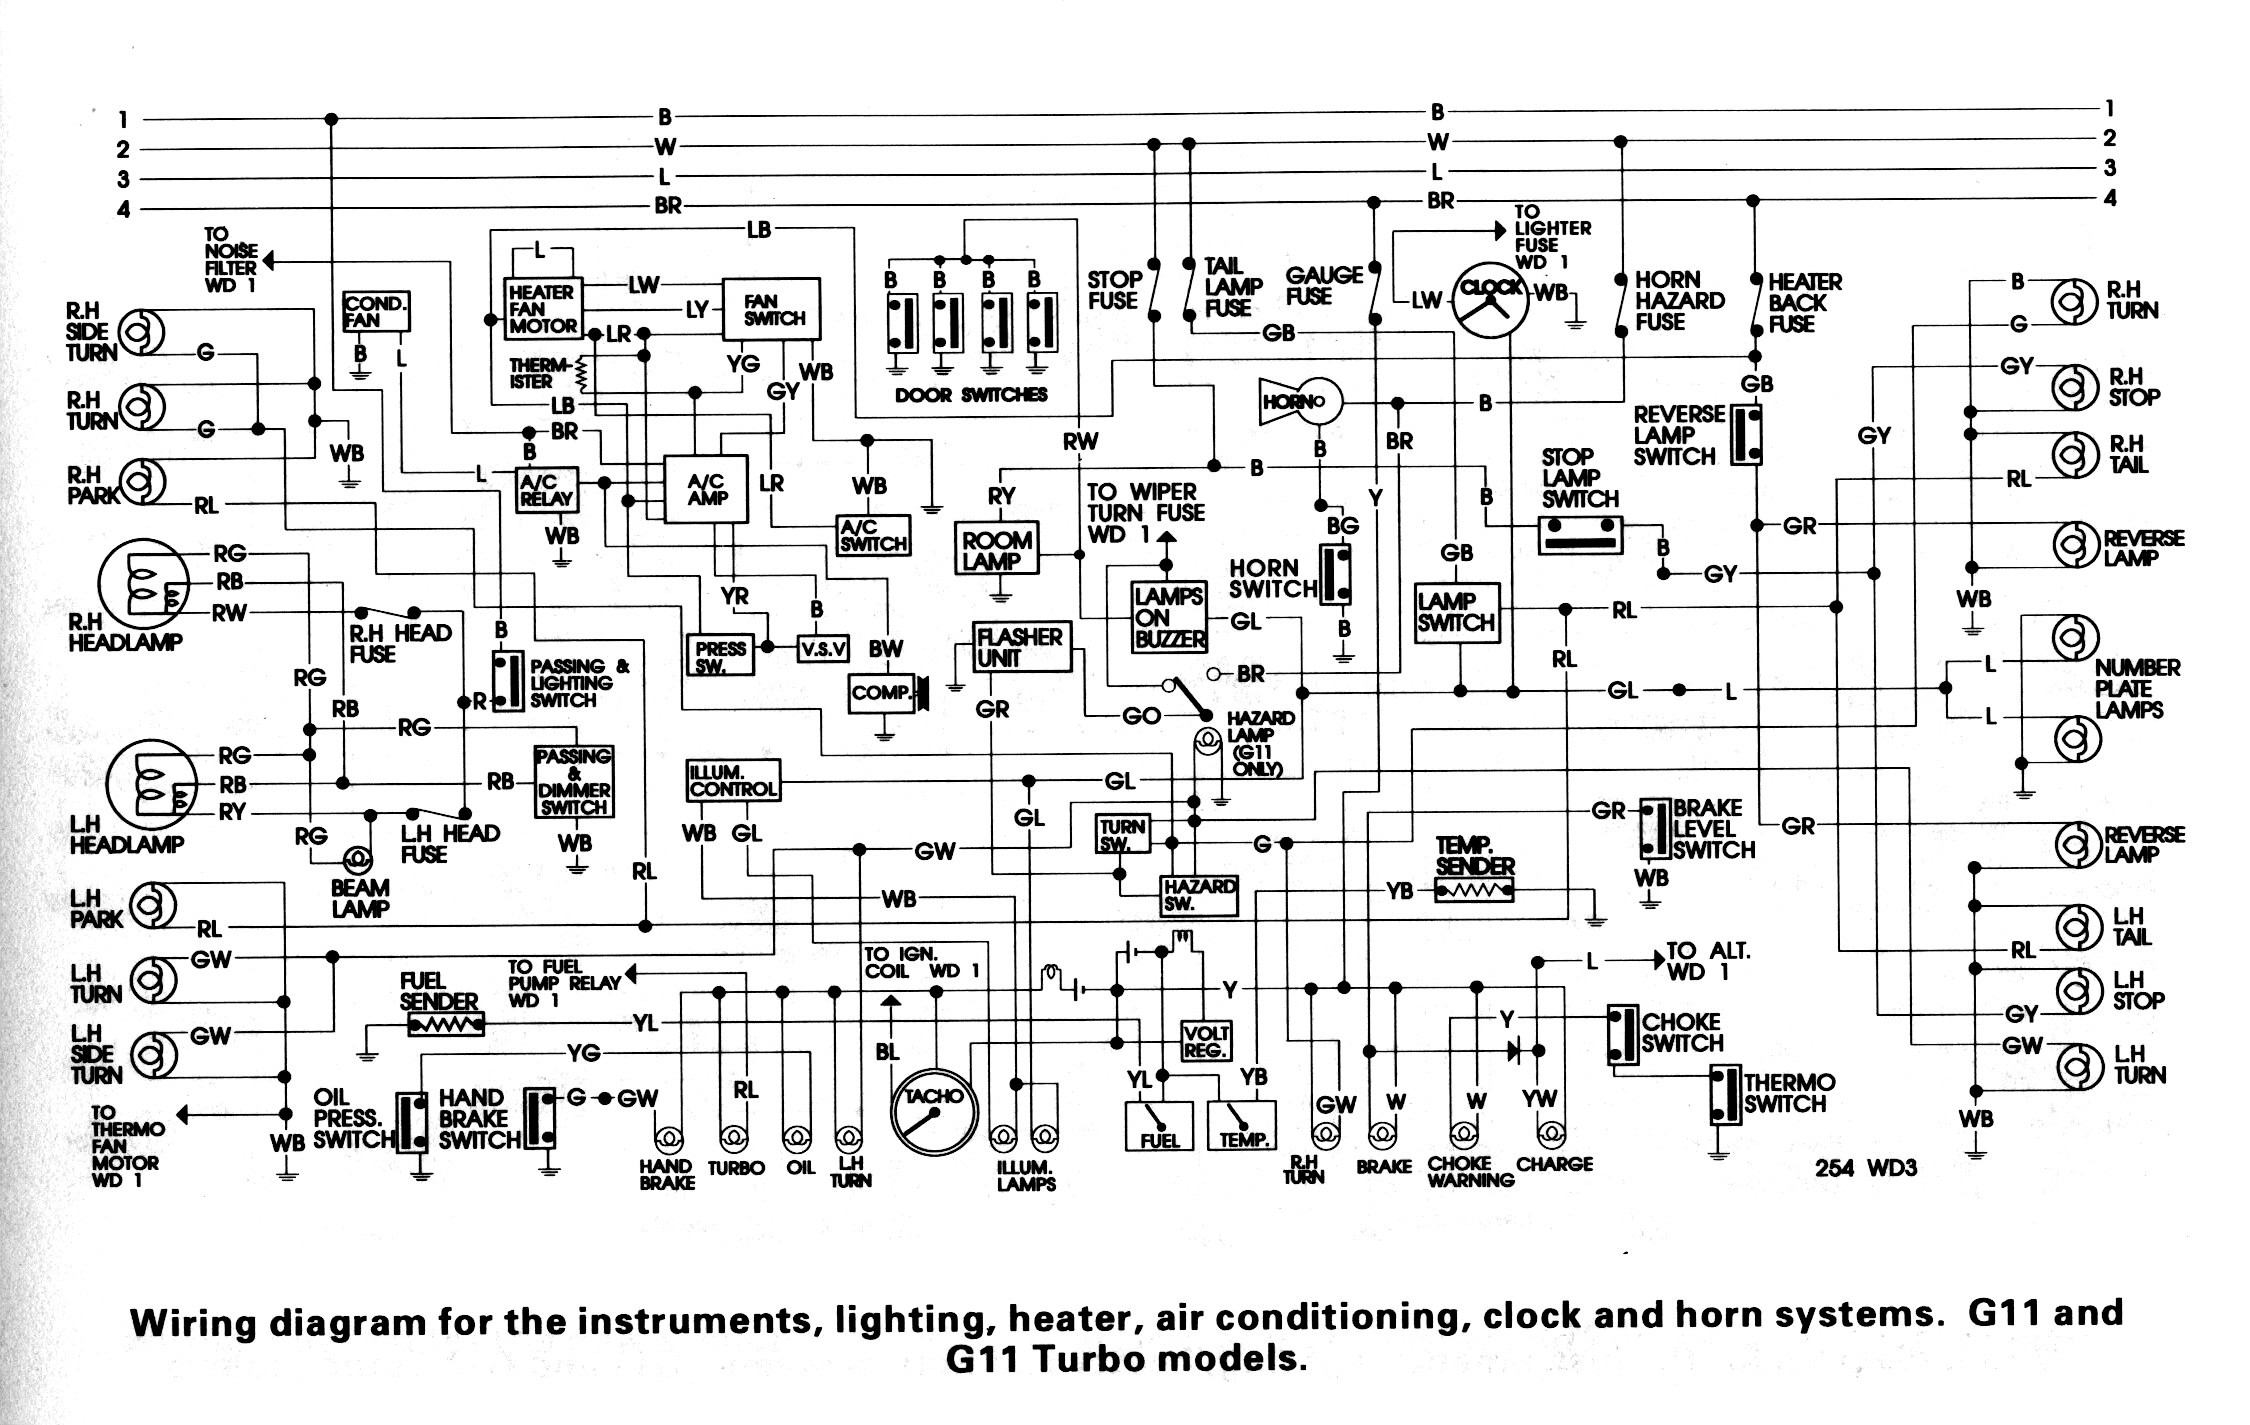 Electrical Wiring Diagram Symbols Electrical Schematic Symbols Wire ...